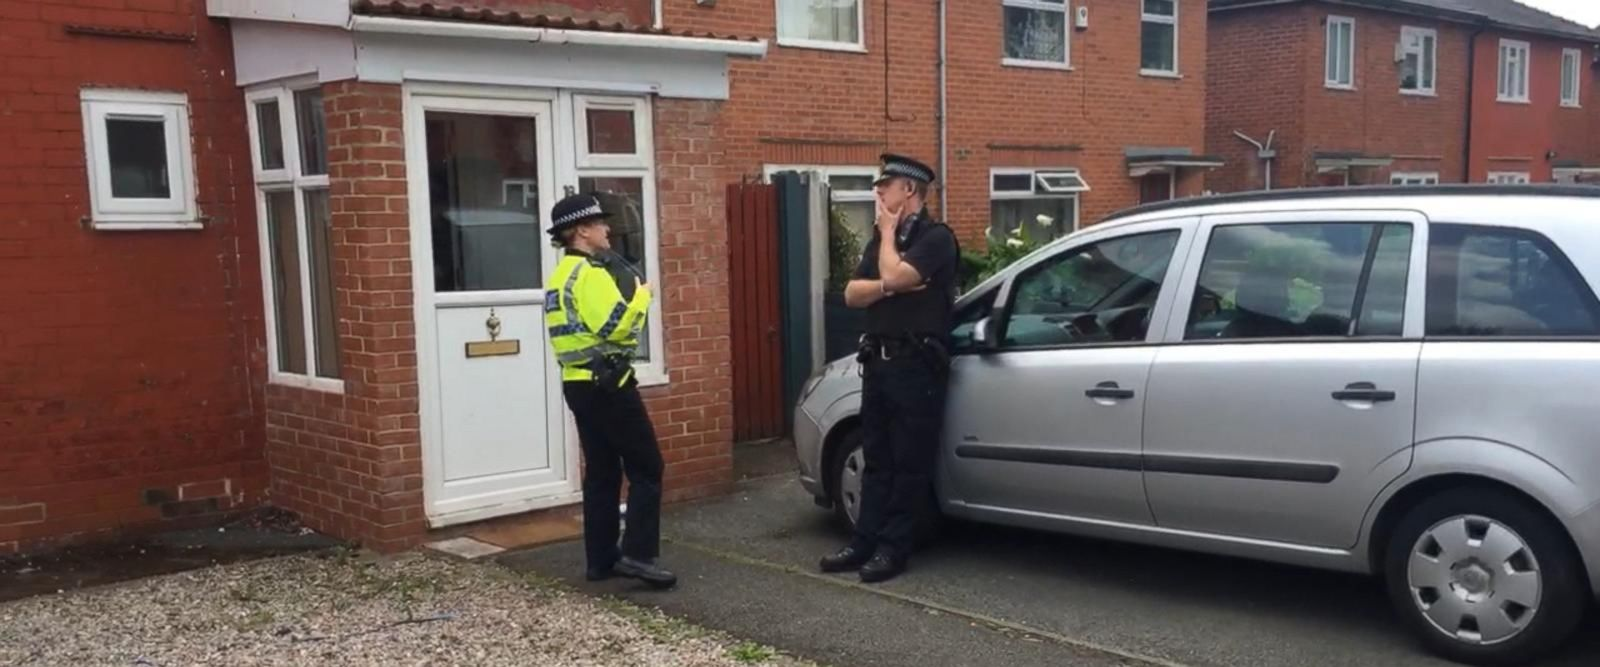 VIDEO: Overnight police raids in Manchester lead to arrests